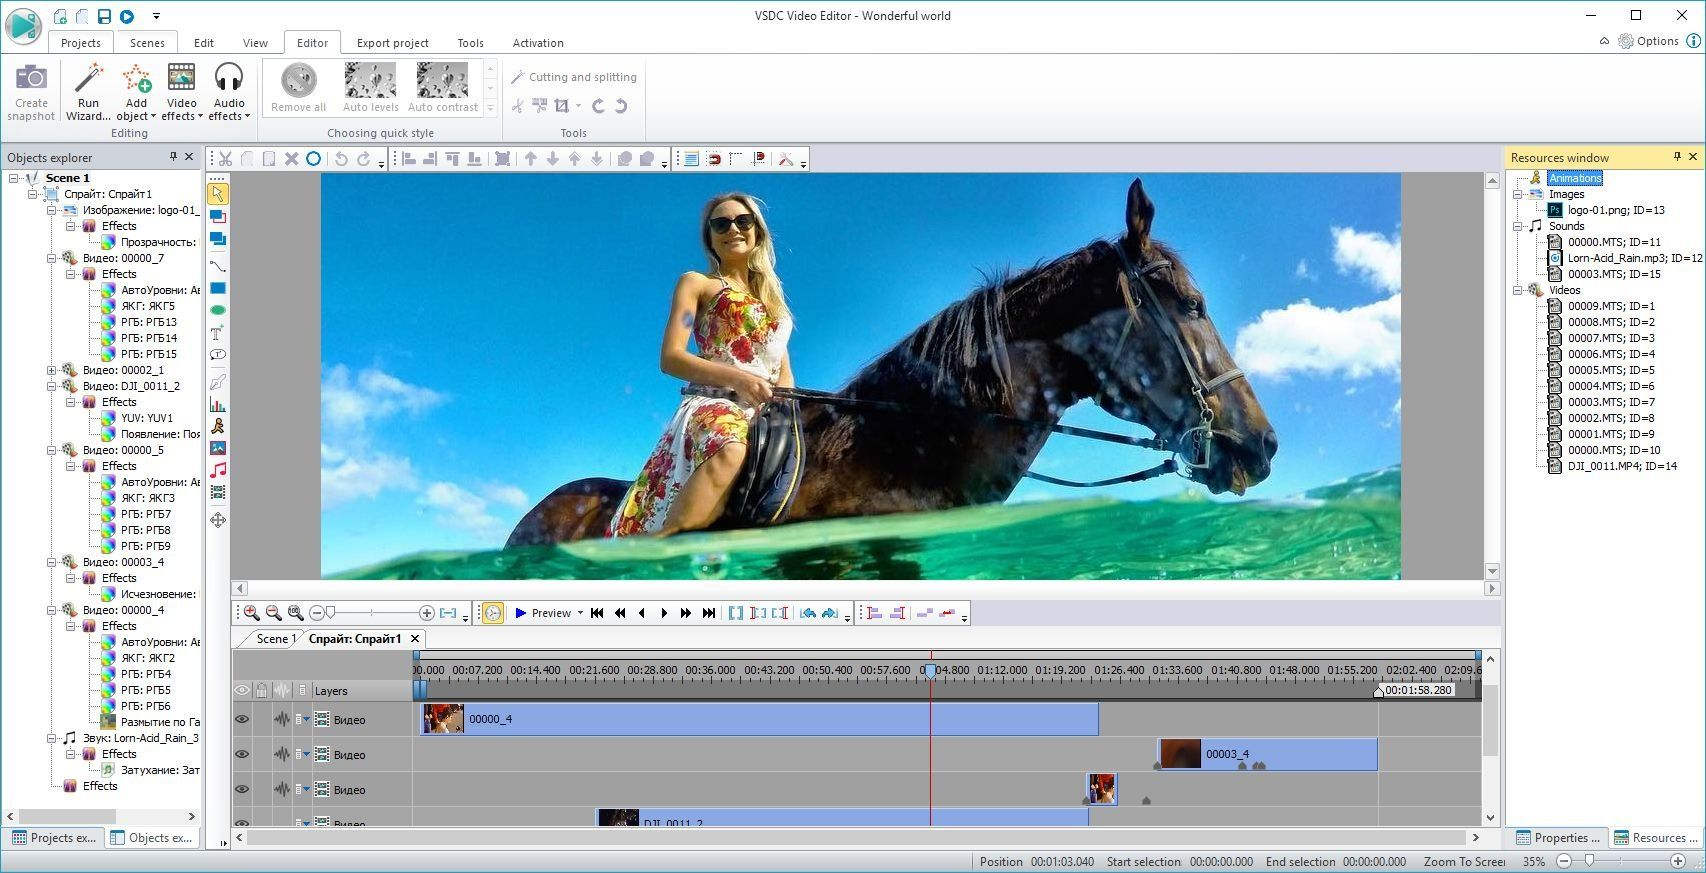 Pin by Abjdpmsaqbrwj on Downloads | Free video editing